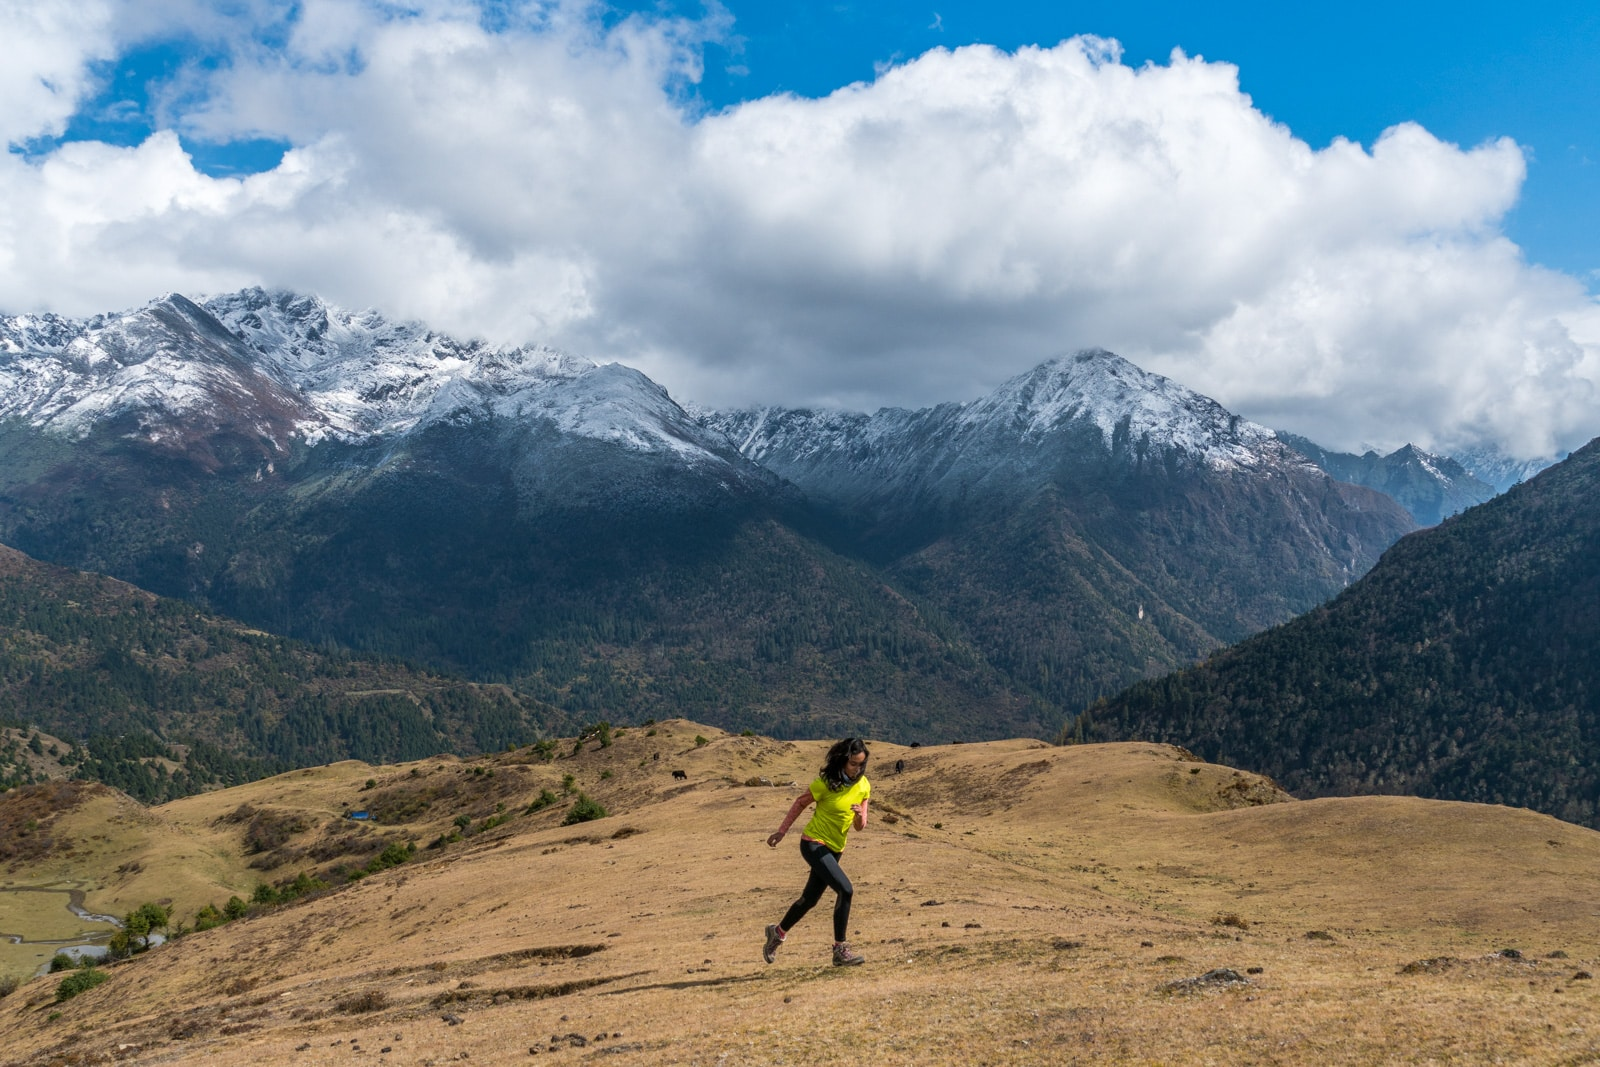 Things to have in your travel insurance - Hiking to the Royal Highlander Festival in Bhutan - Lost With Purpose travel blog